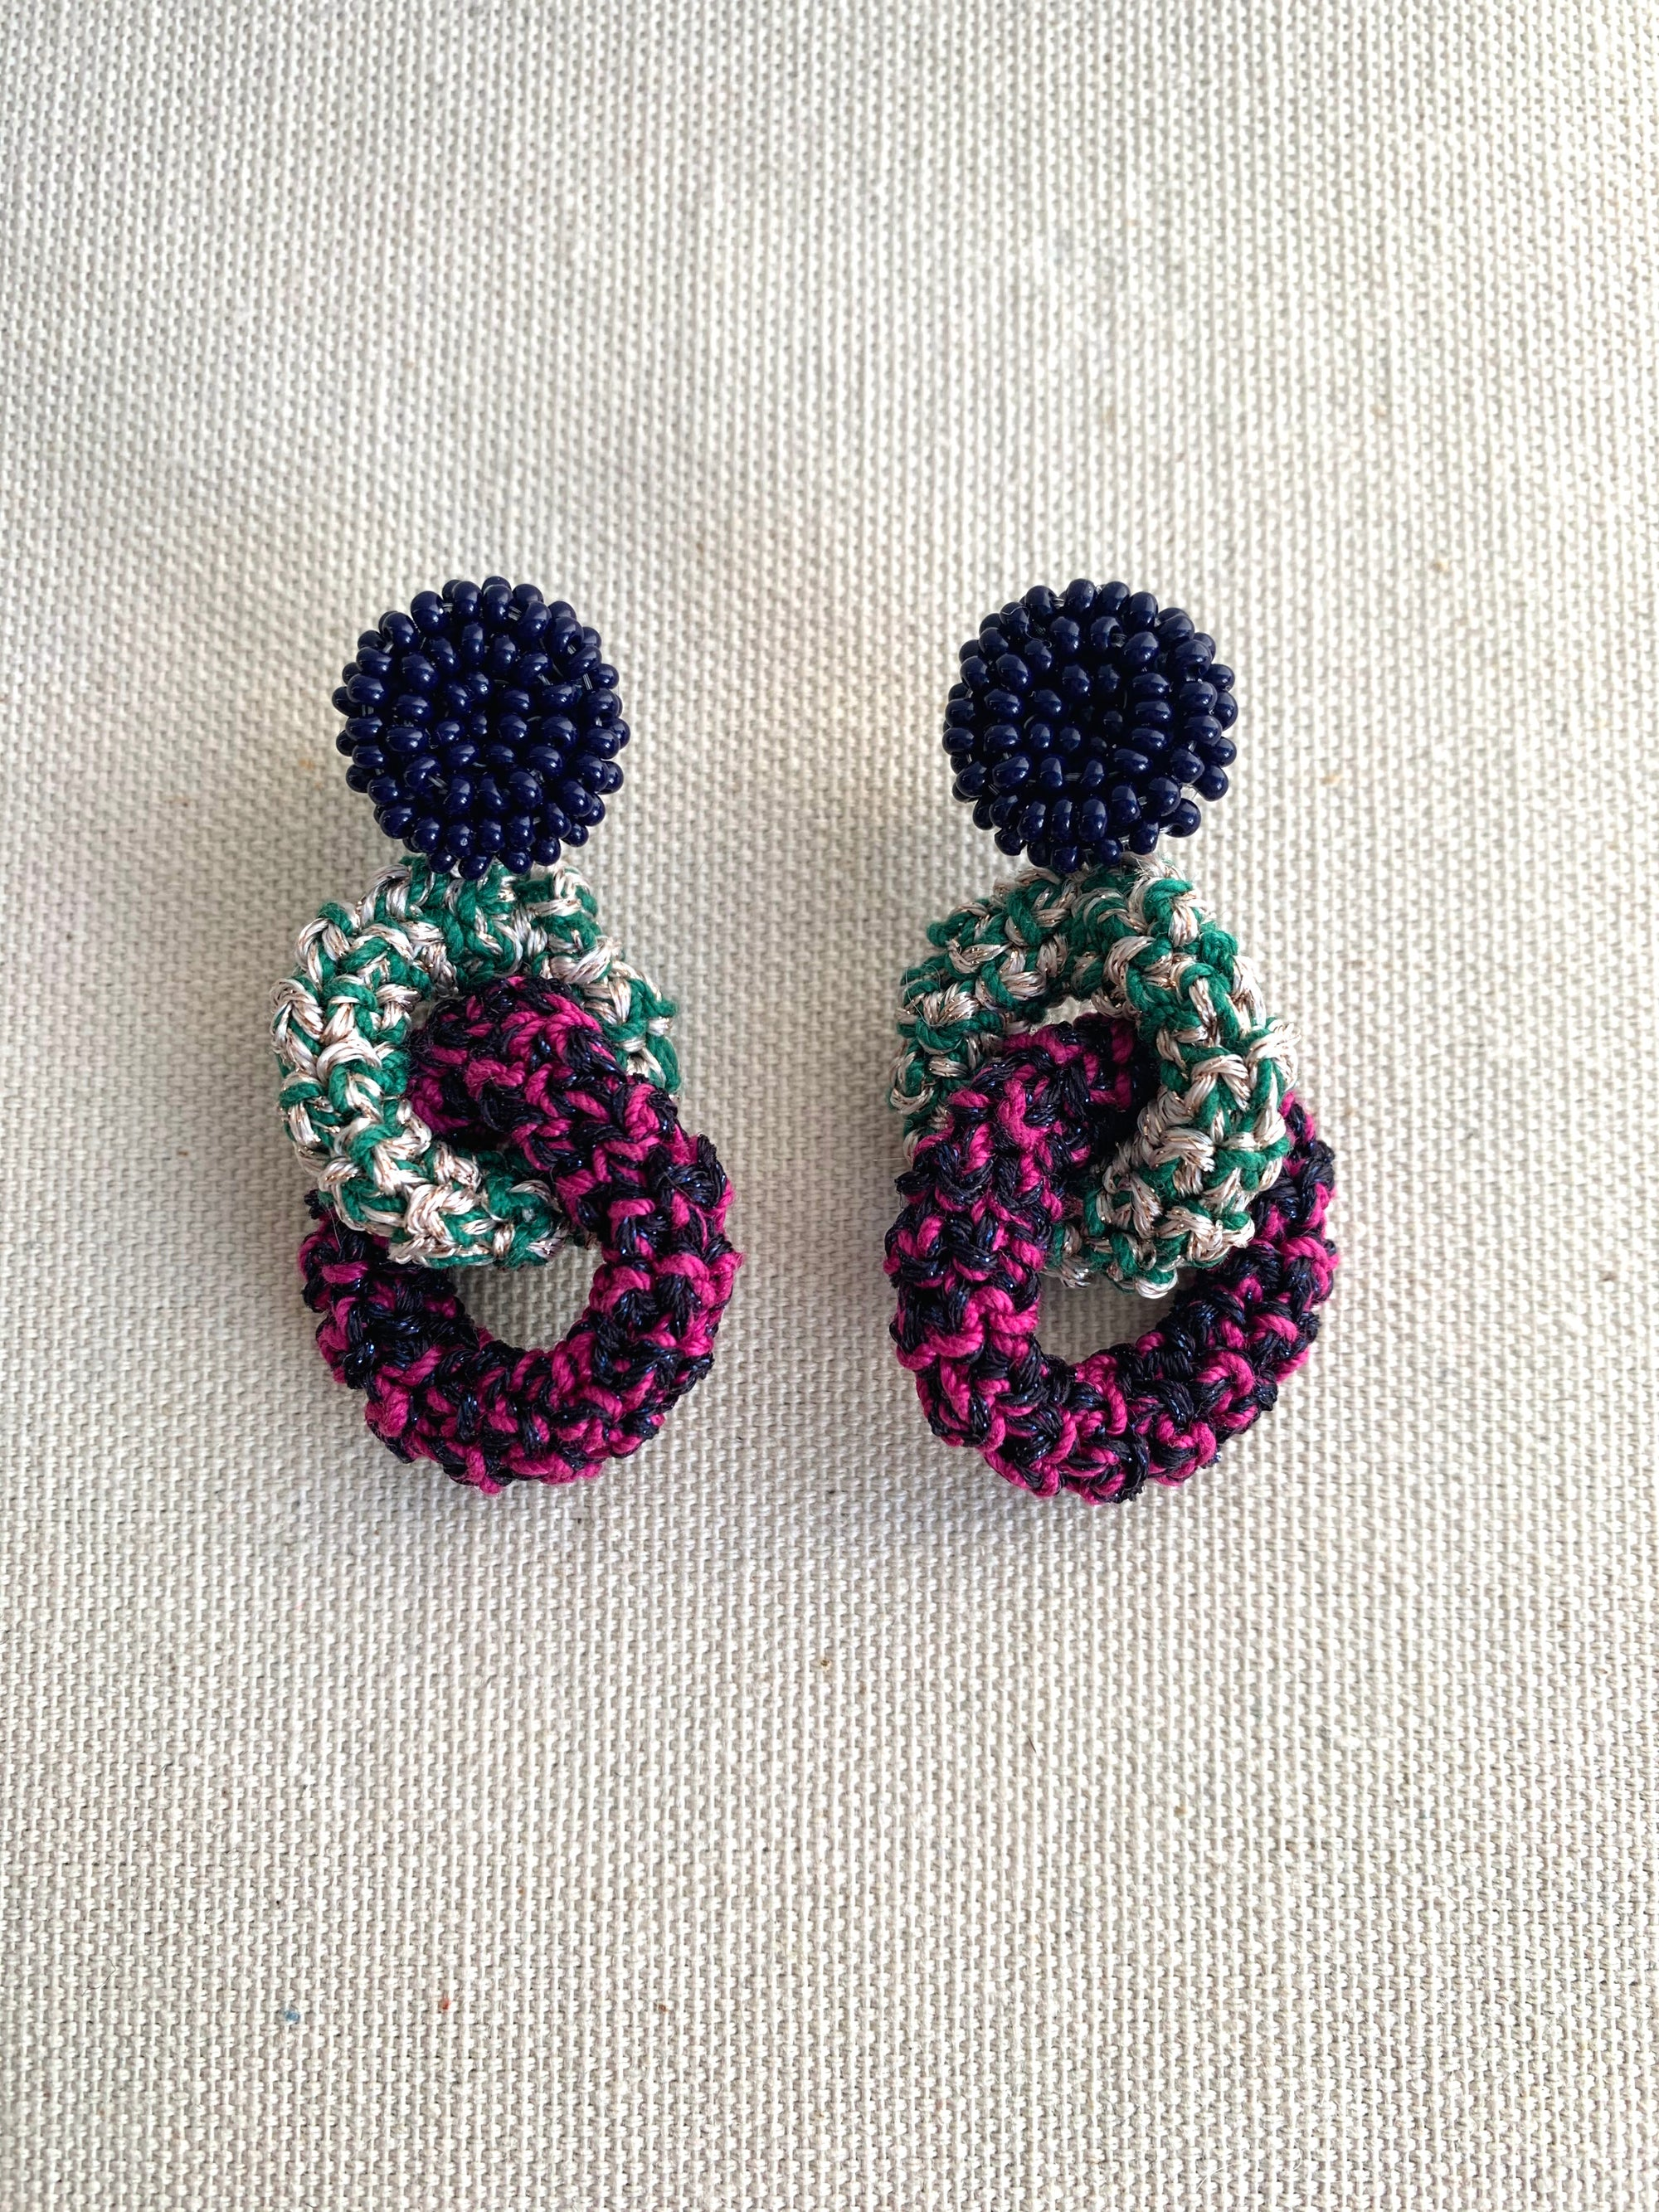 Image of Dark Blue and Green Bonded Together earrings